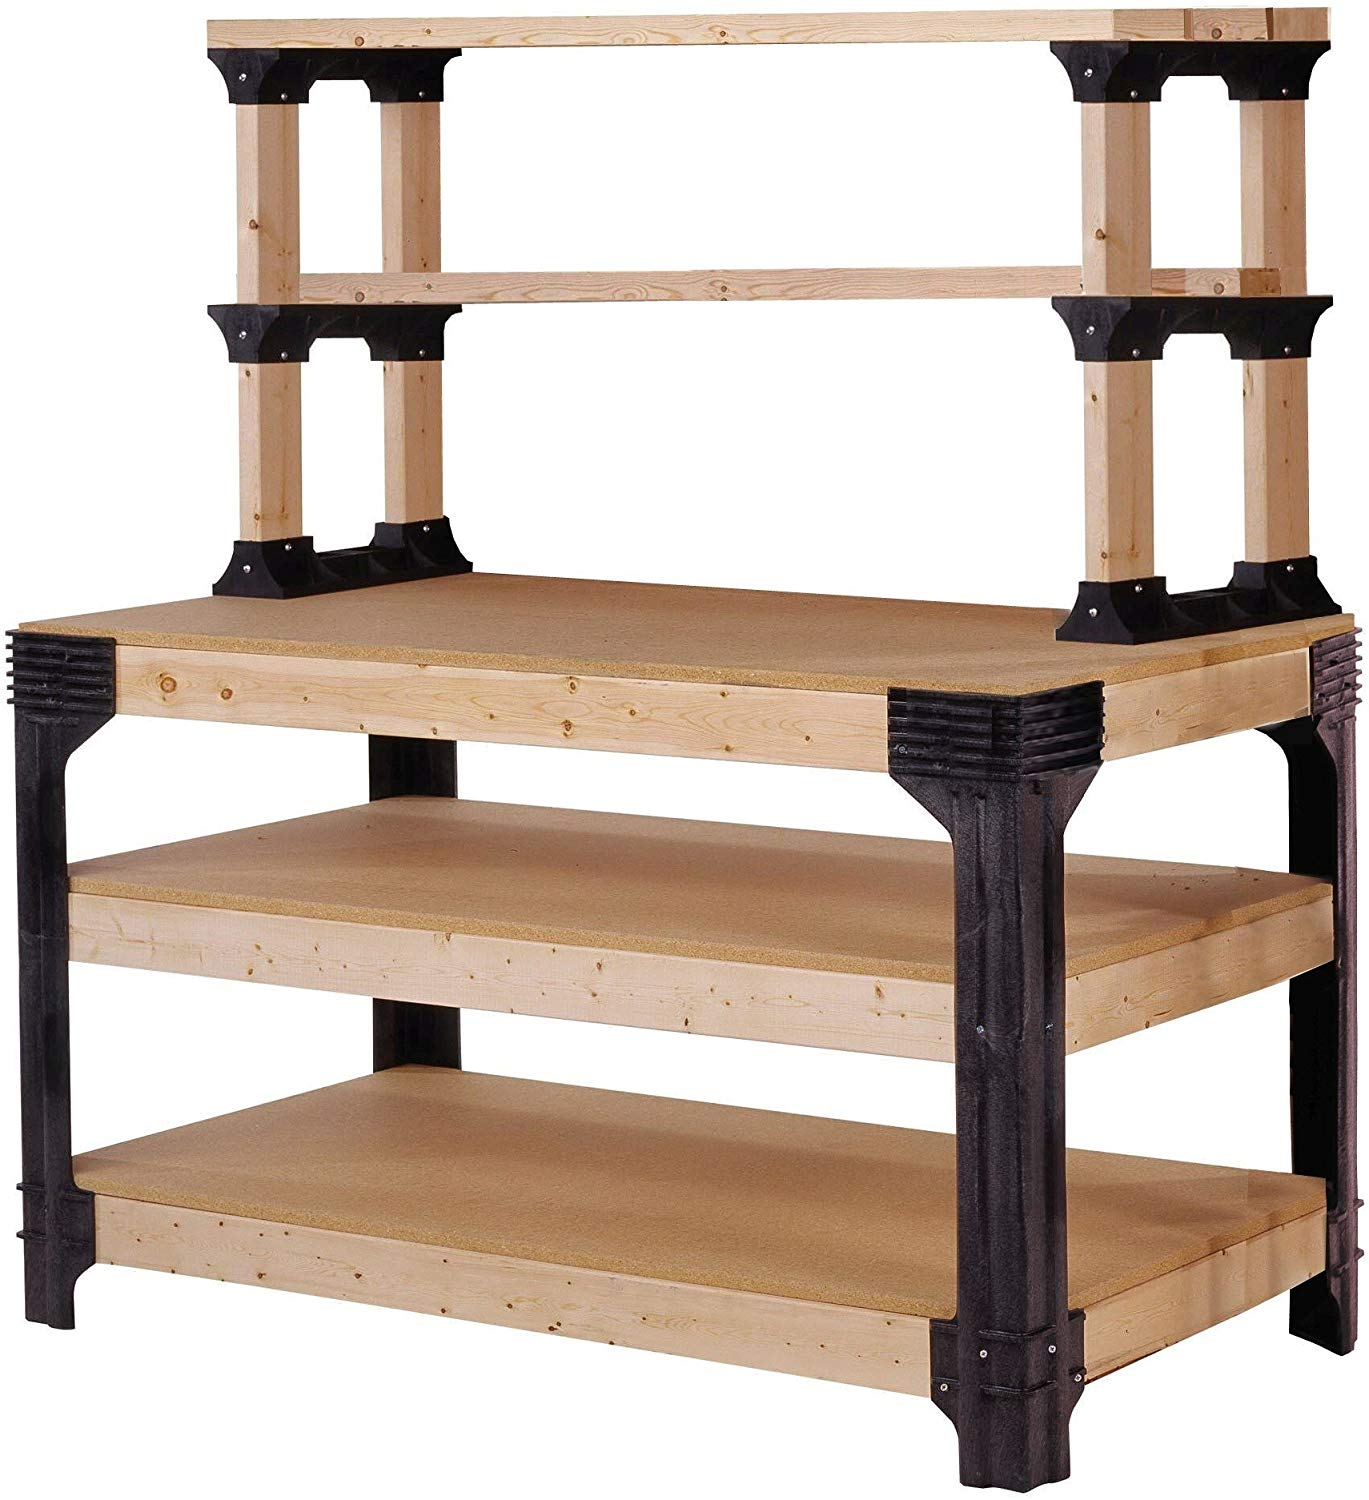 Bench for tool storage ideas